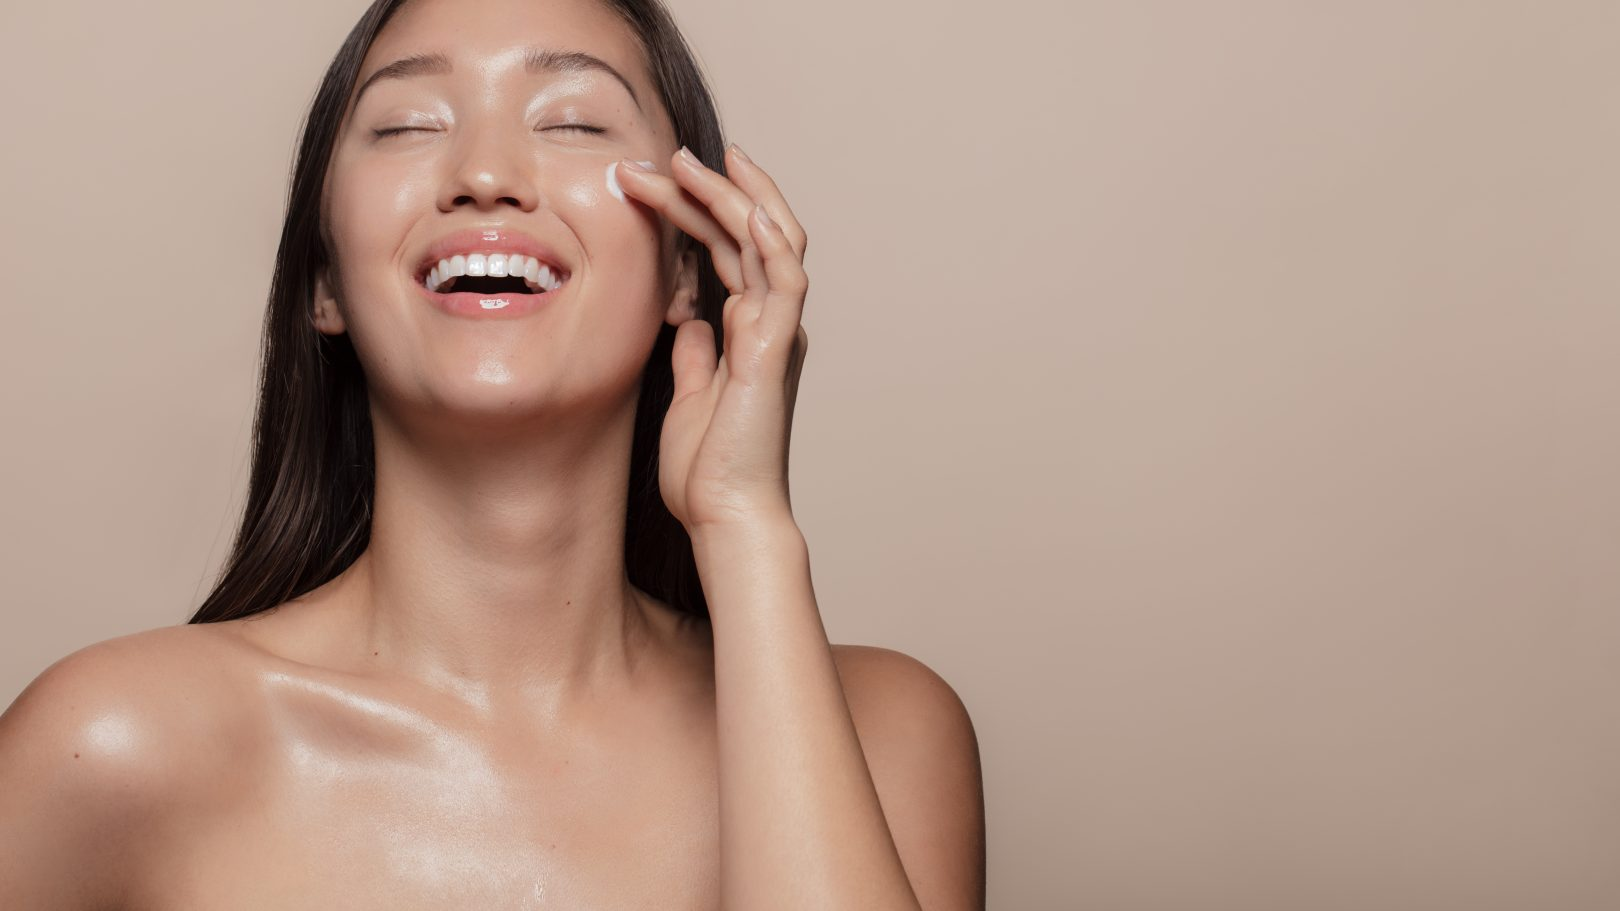 Esthetician-approved product reportedly clears up eczema